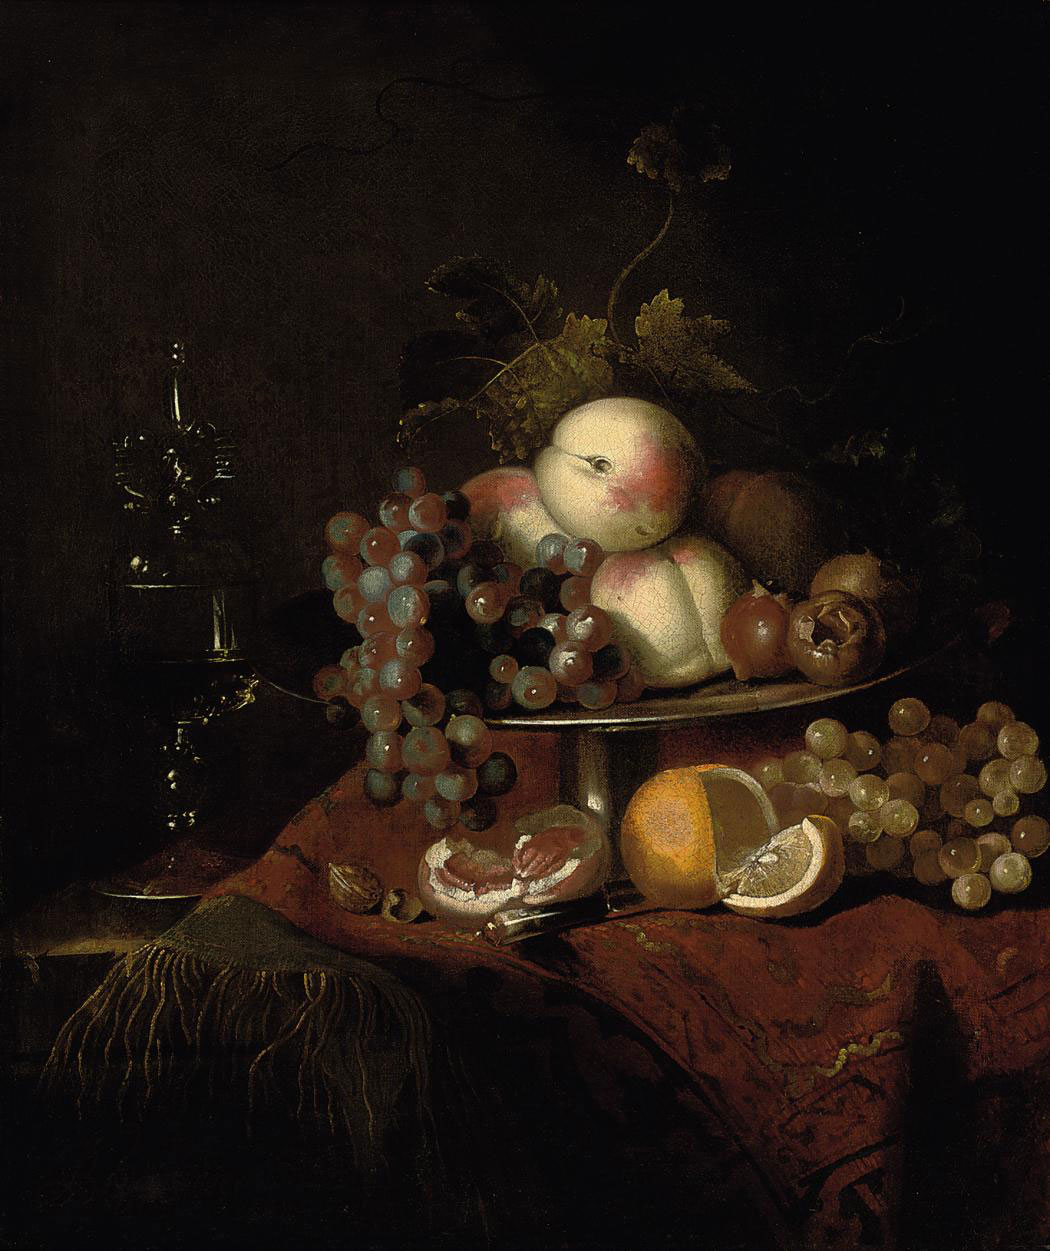 Peaches, grapes and pomegranates on a plate, a sliced orange and walnuts on a partly draped table with a wine glass